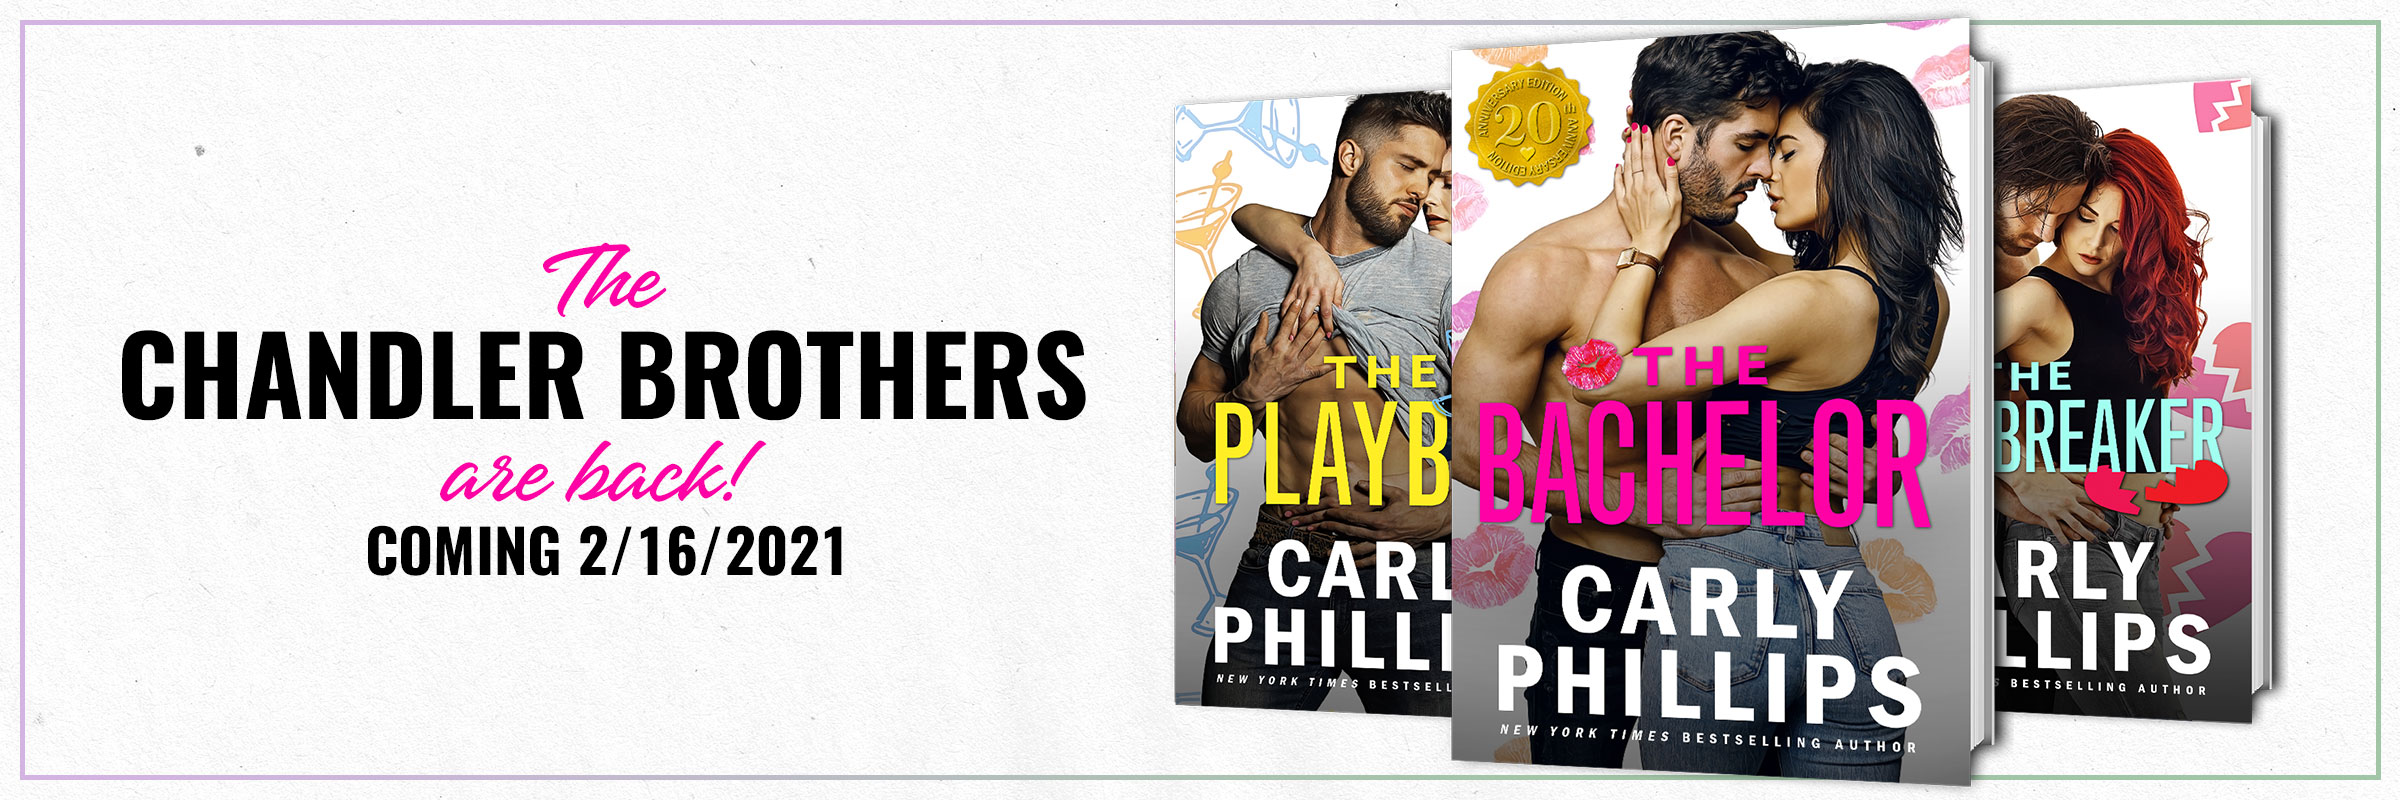 The Chandler Brothers by Carly Phillips